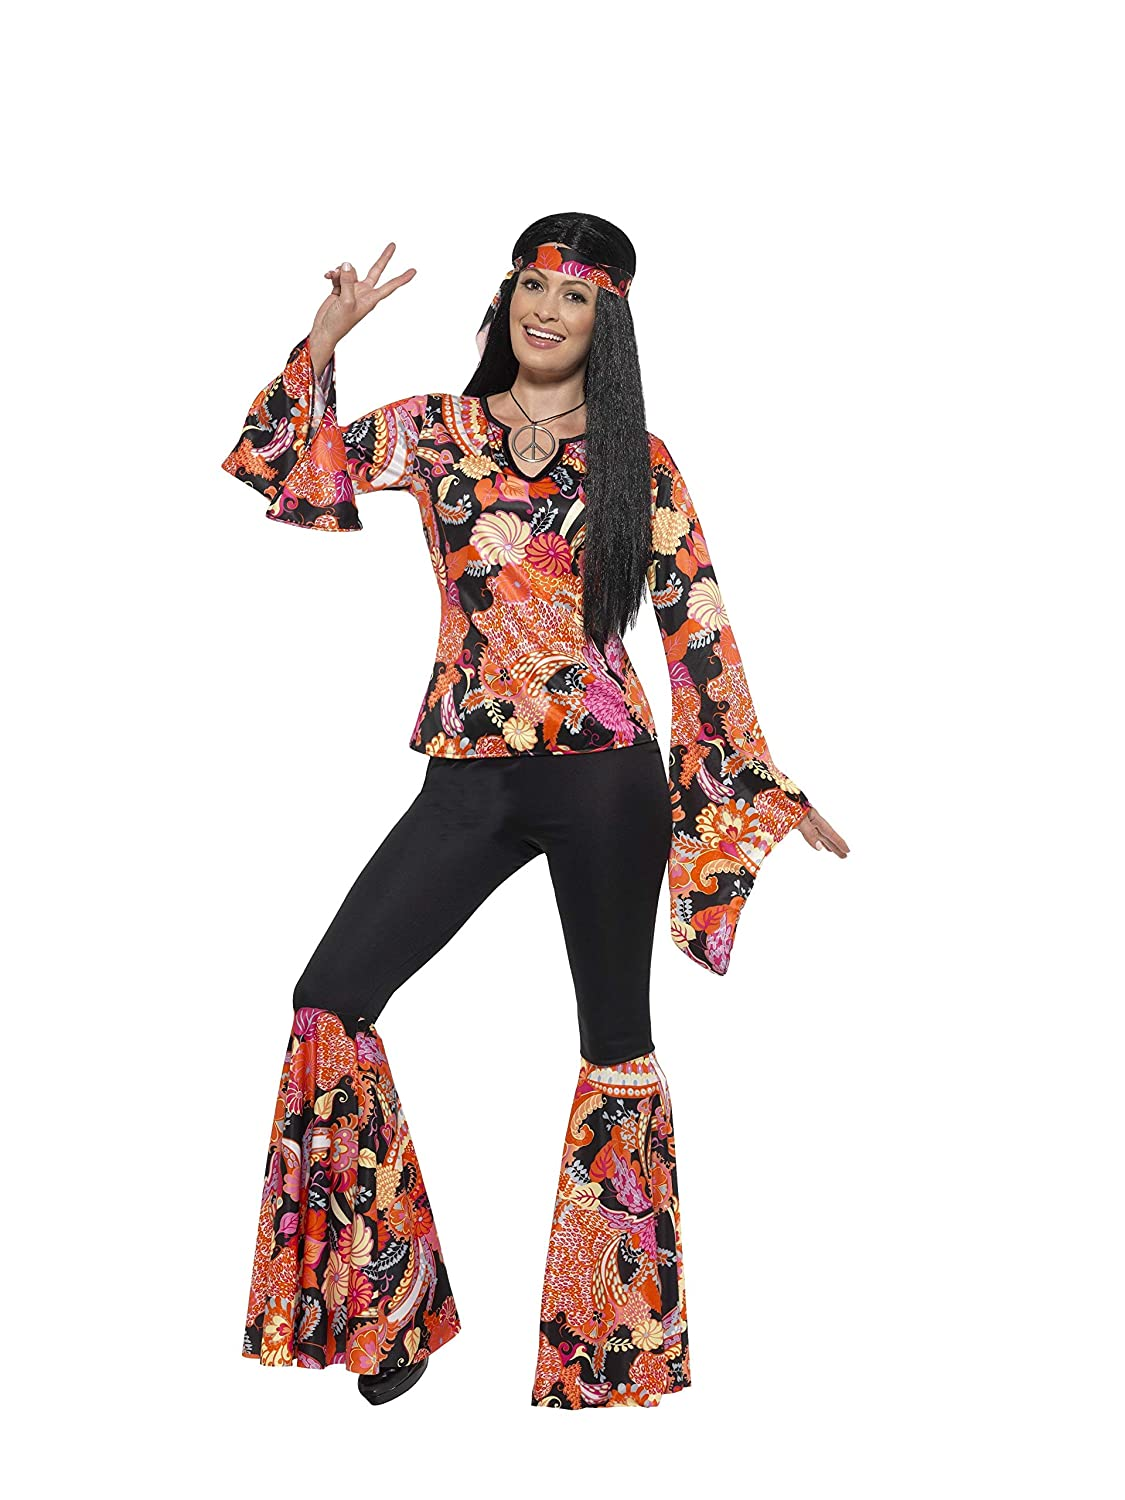 Hippie Costumes, Hippie Outfits Smiffys Willow The Hippie Costume $22.05 AT vintagedancer.com